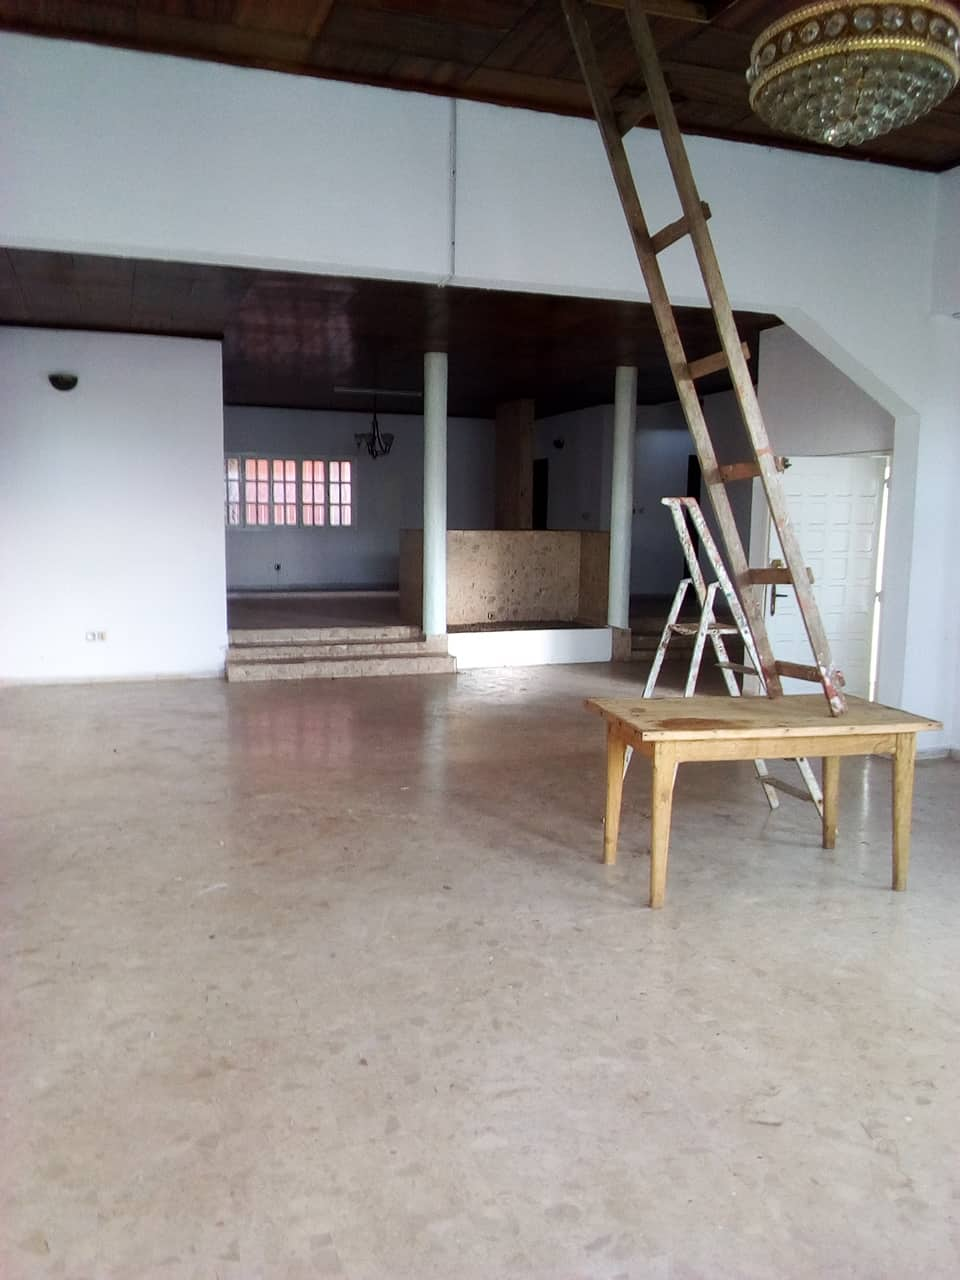 House (Duplex) to rent - Yaoundé, Bastos, pas loin de la nouvelle route - 2 living room(s), 6 bedroom(s), 5 bathroom(s) - 1 500 000 FCFA / month